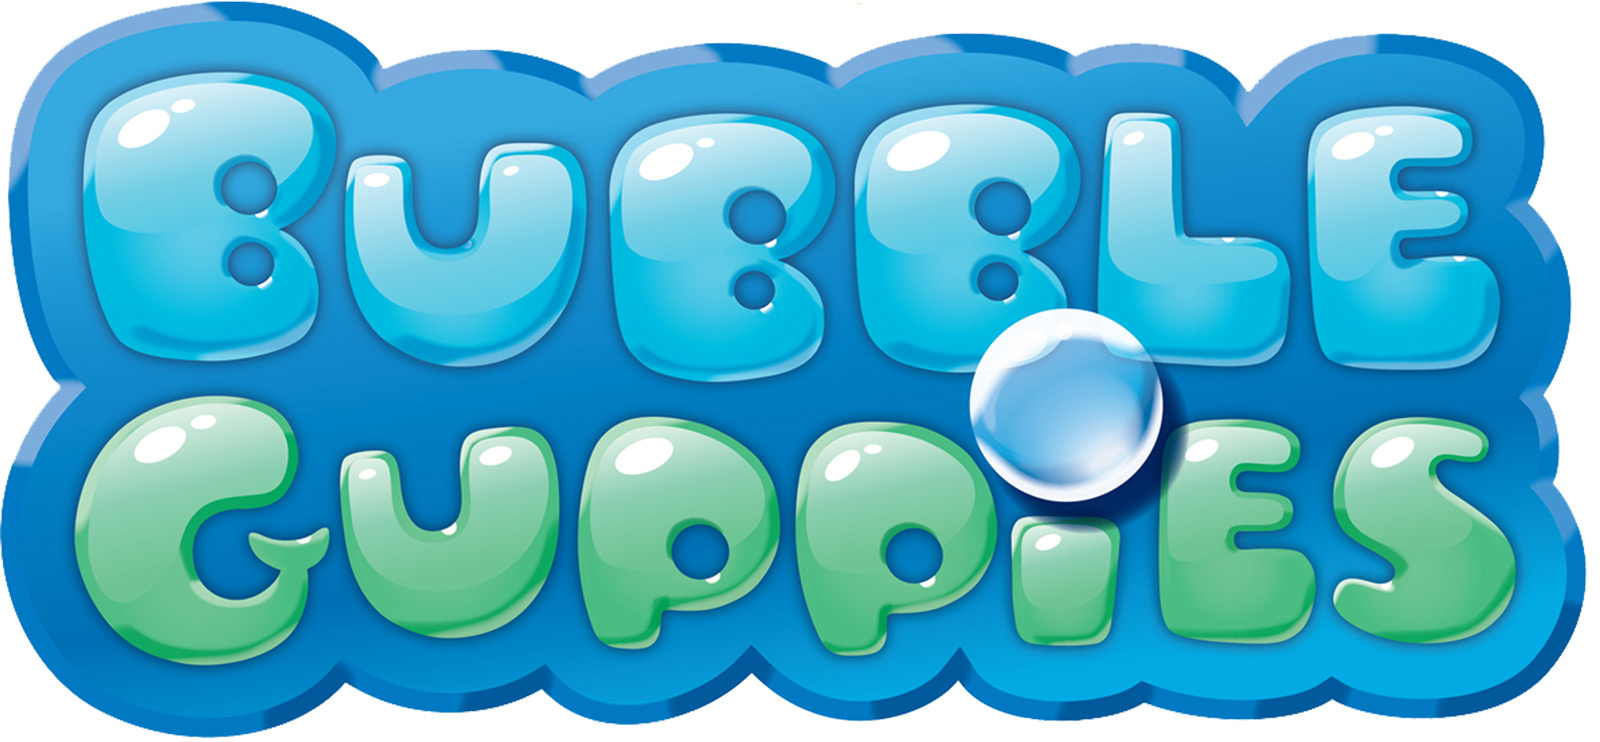 Bubble guppies are molly and gil dating service 6